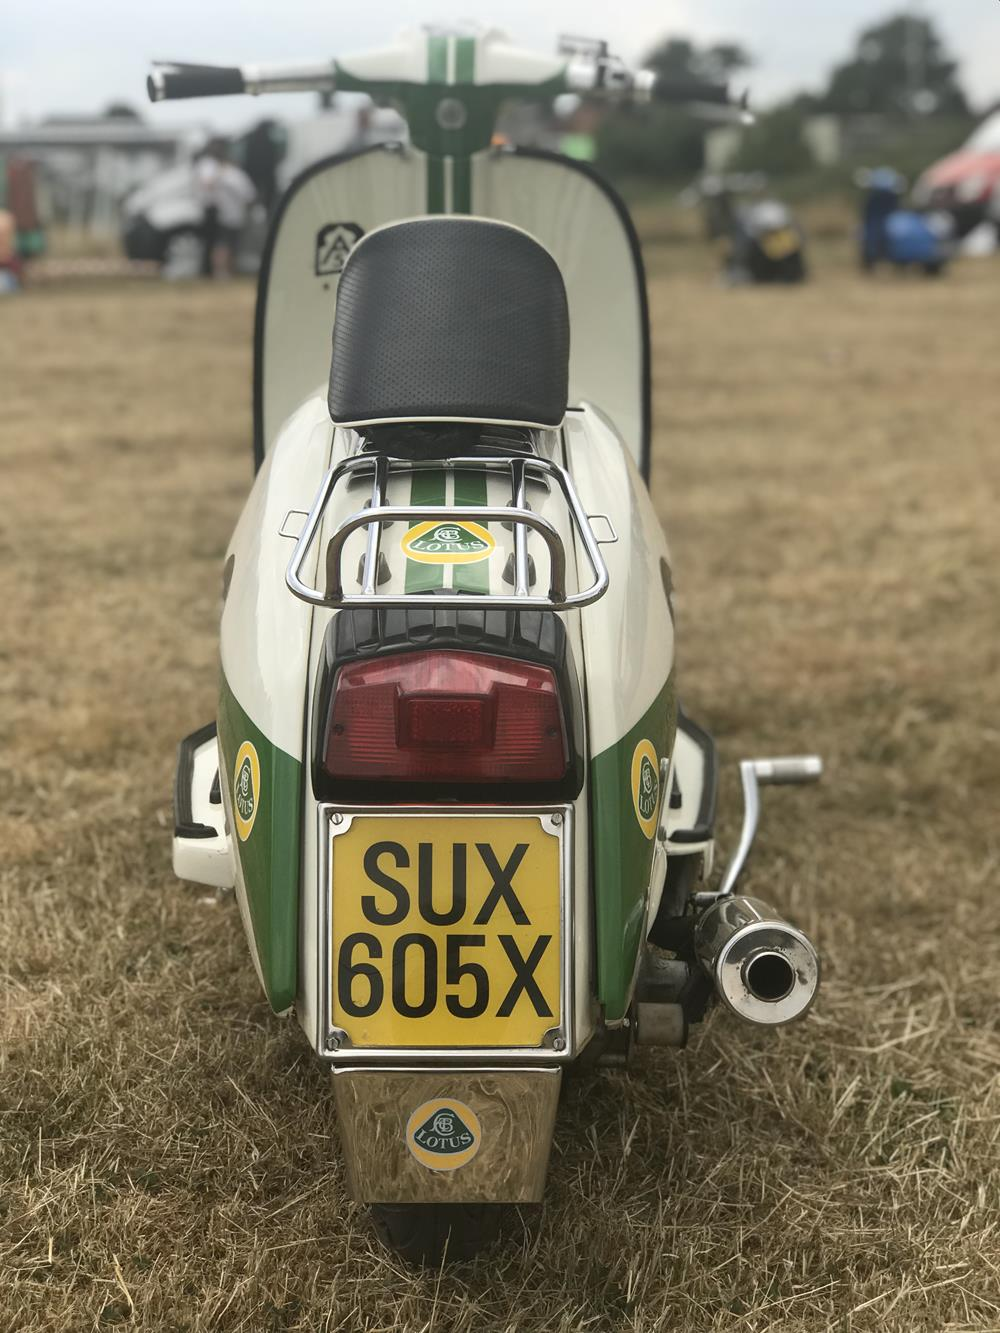 Rear view of Lambretta with Lotus theme